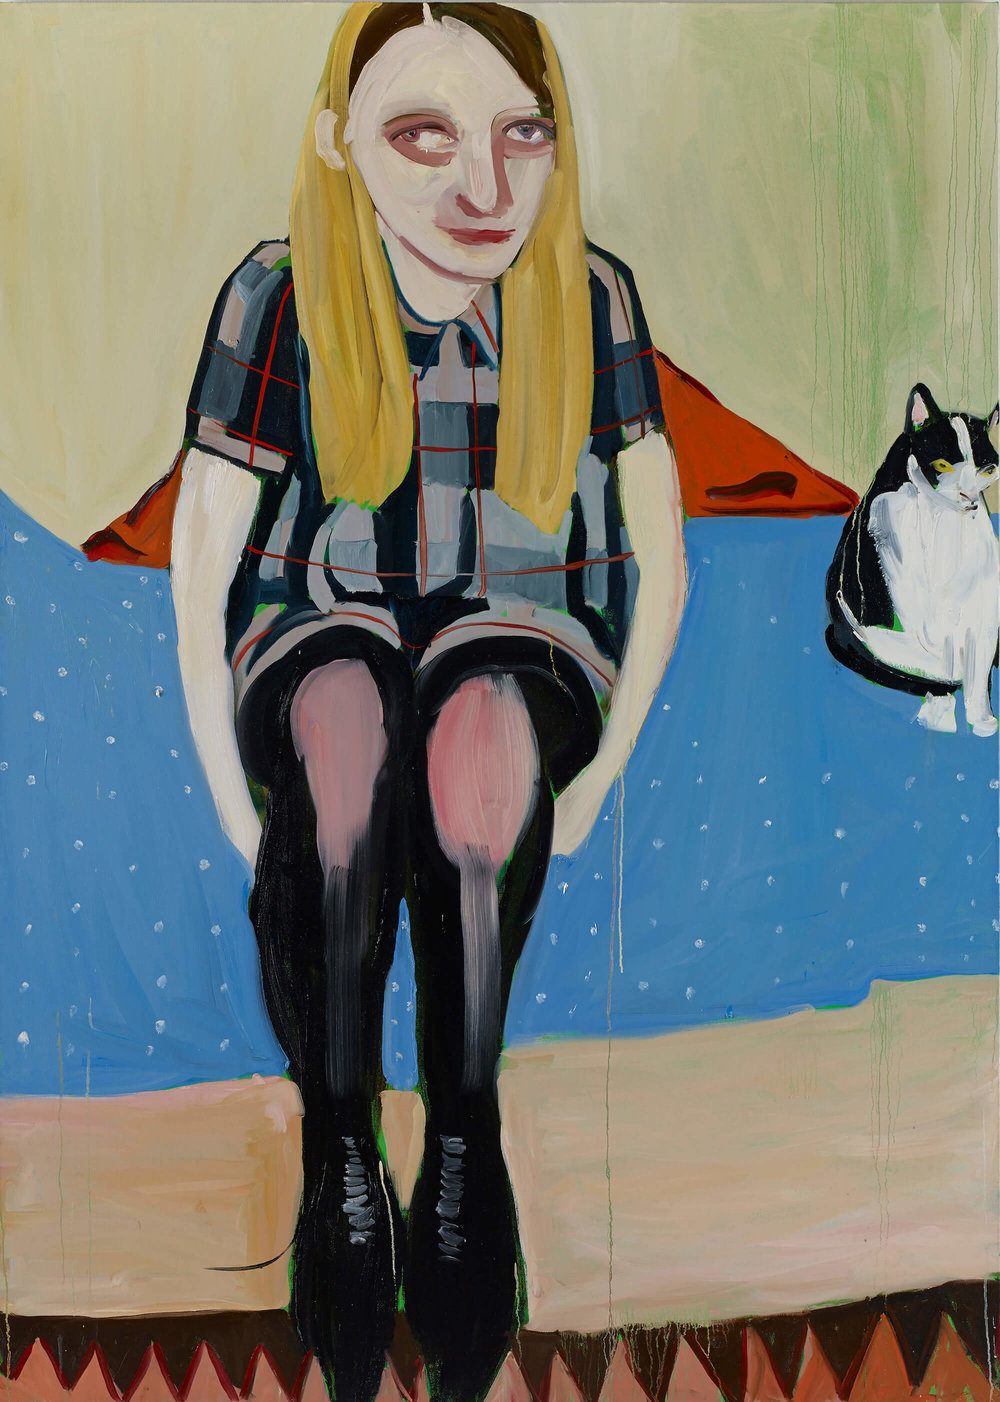 chantal-joffe-body-image-1453490393.jpg